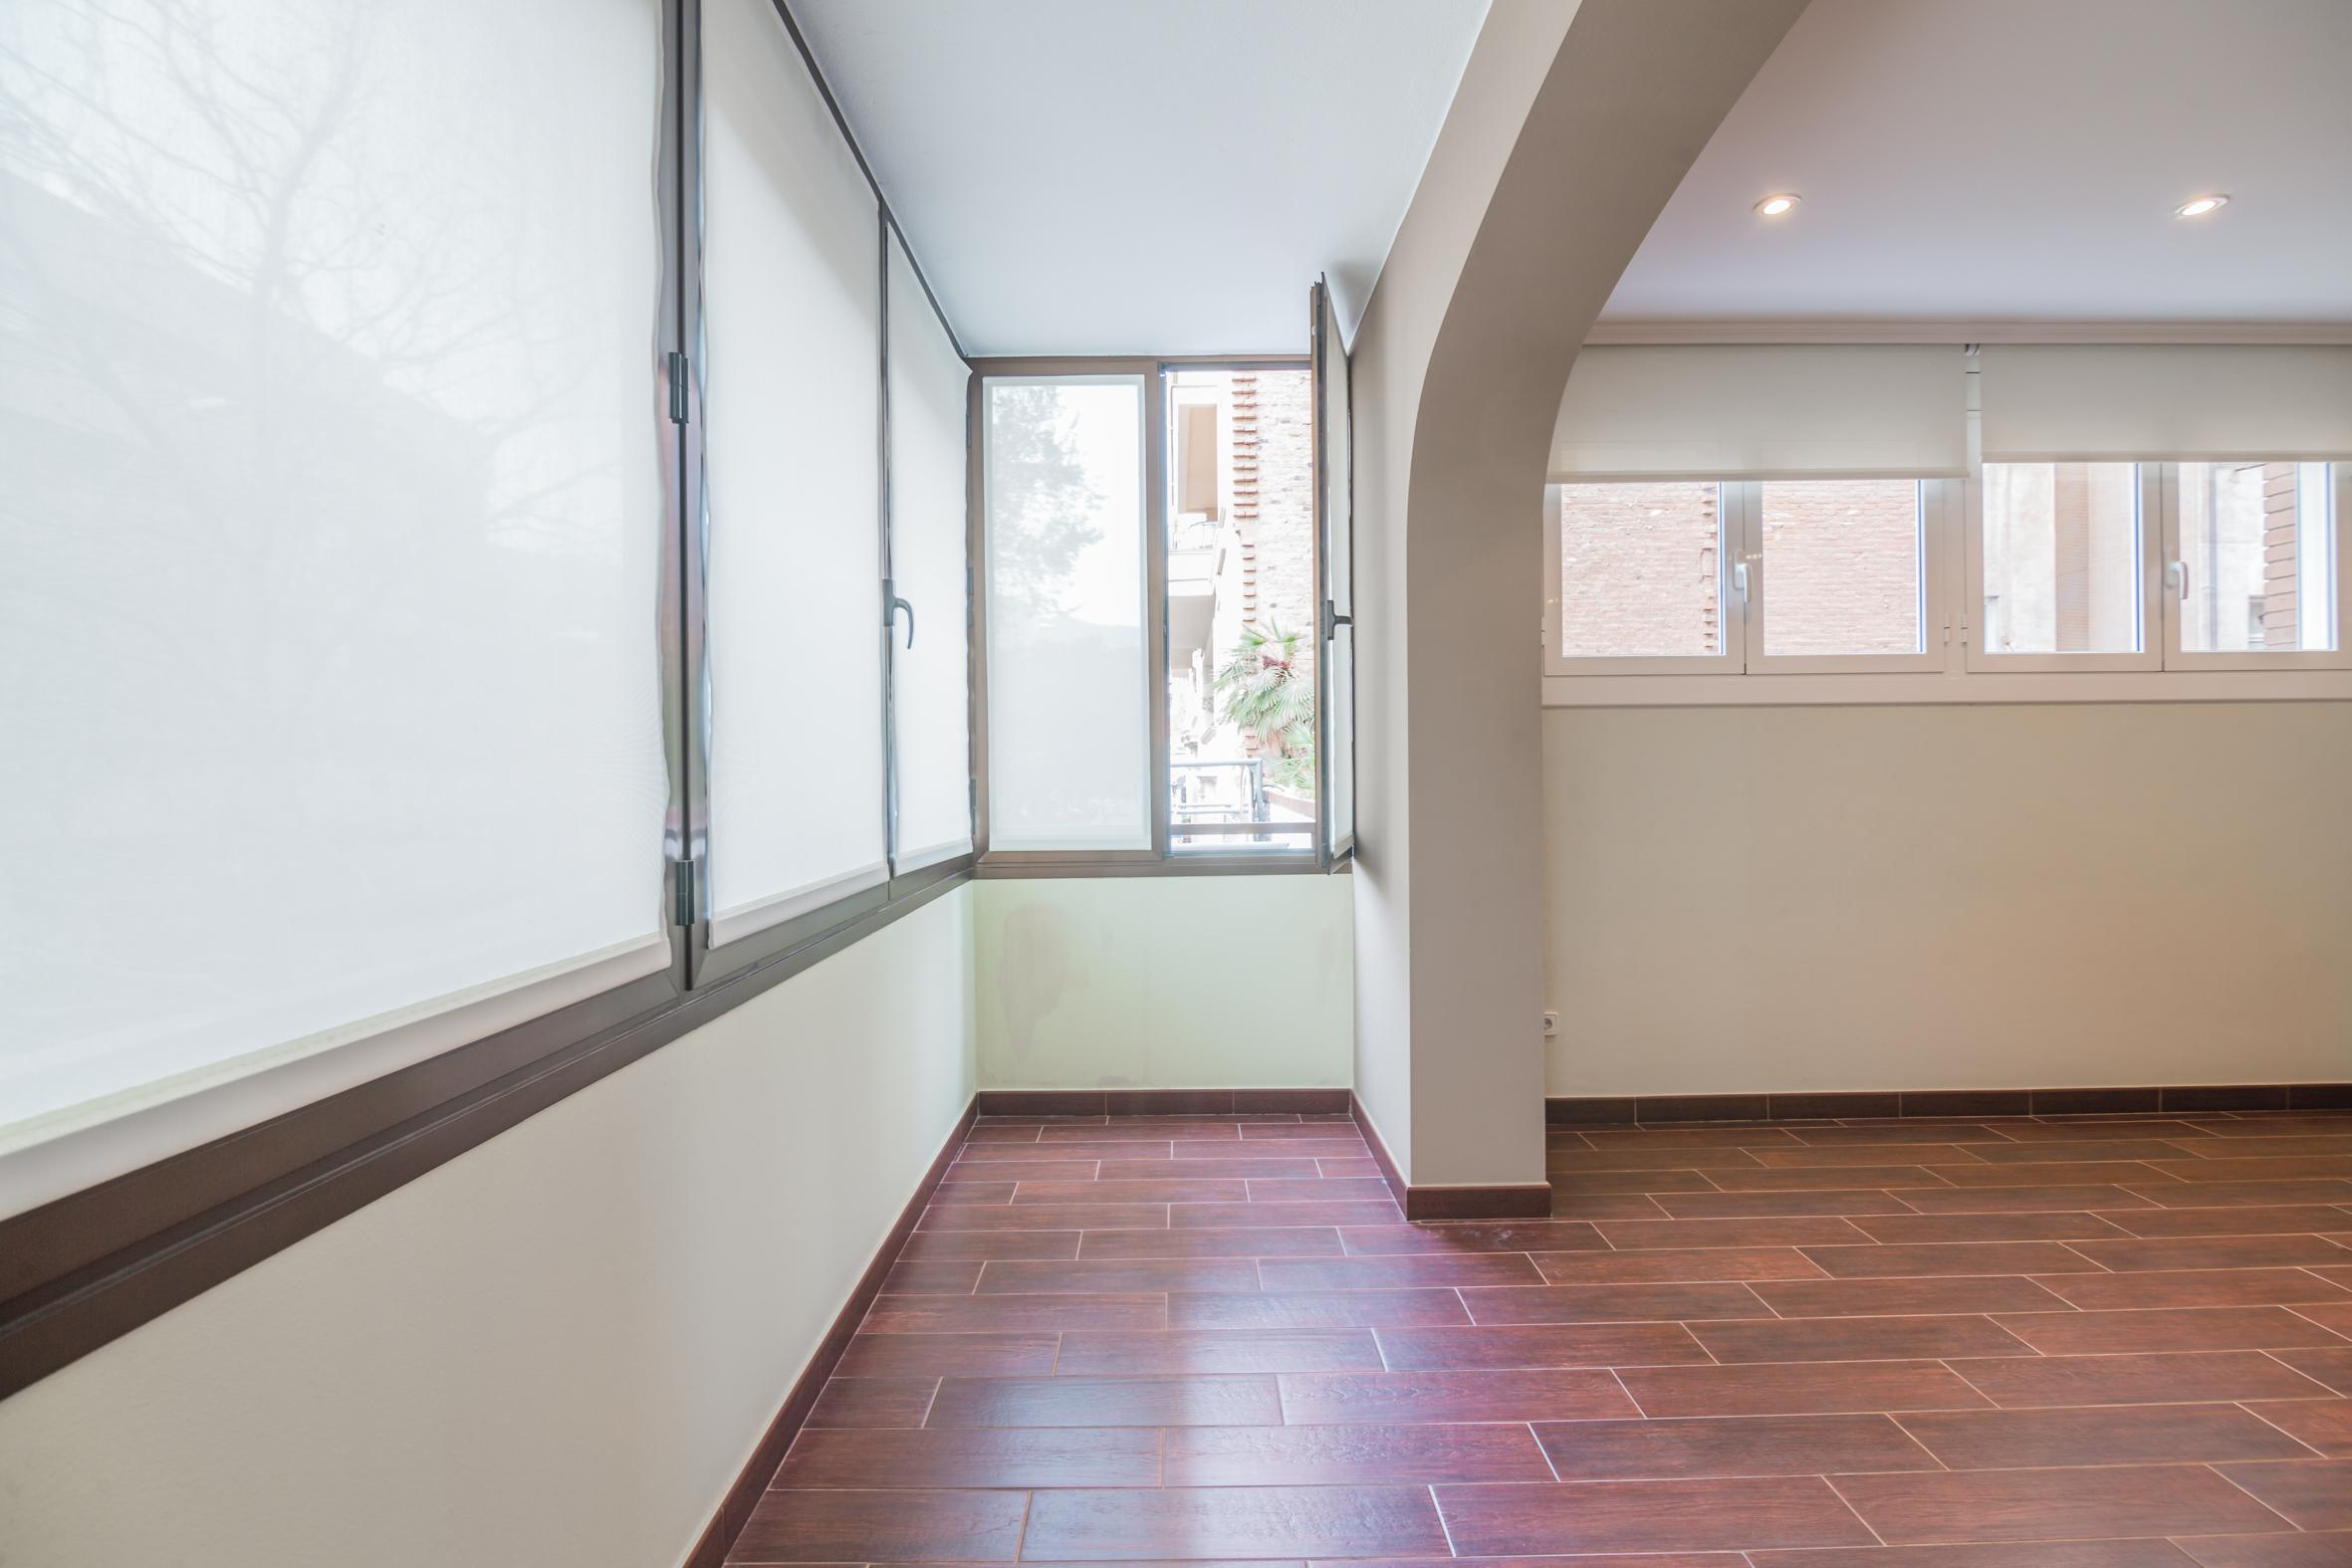 246902 Flat for sale in Les Corts, Pedralbes 6